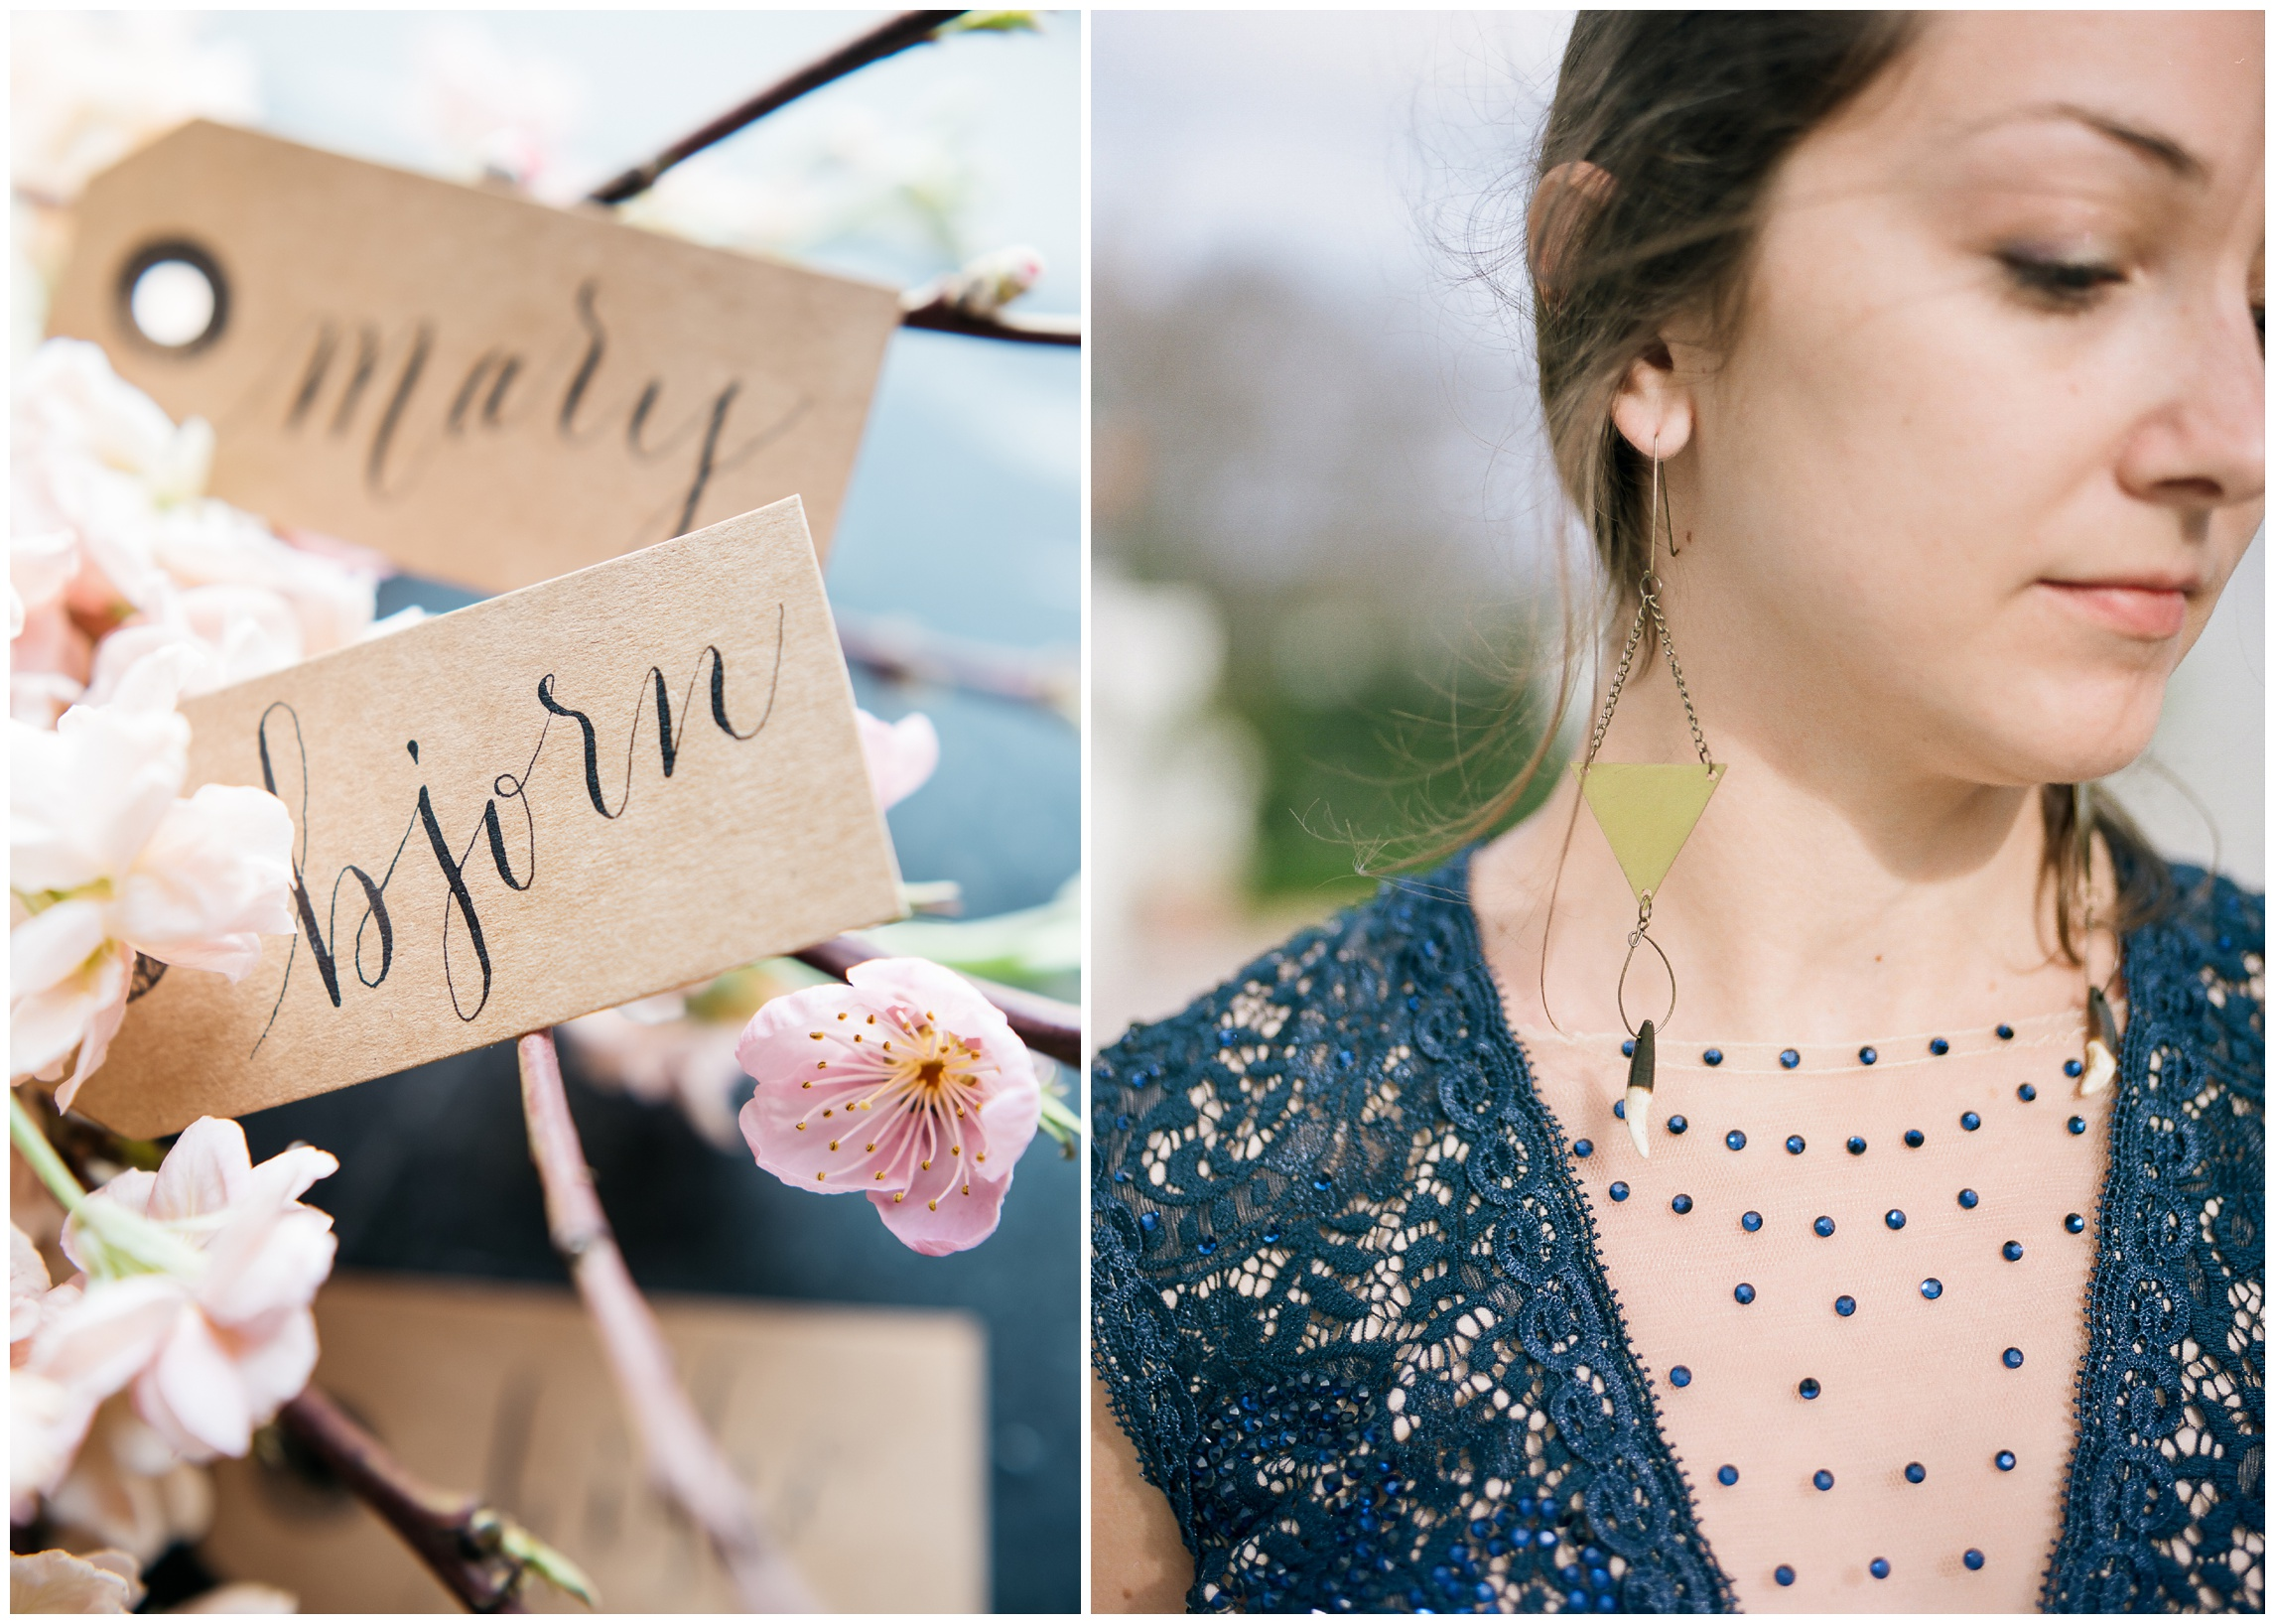 Calligraphy by Natalie Carrasco of Avo Ink. Handmade earrings by Brynna Mollahan of Lunar Fringe Outpost. Film photography by Sonja Salzburg of Sonja K Photography.